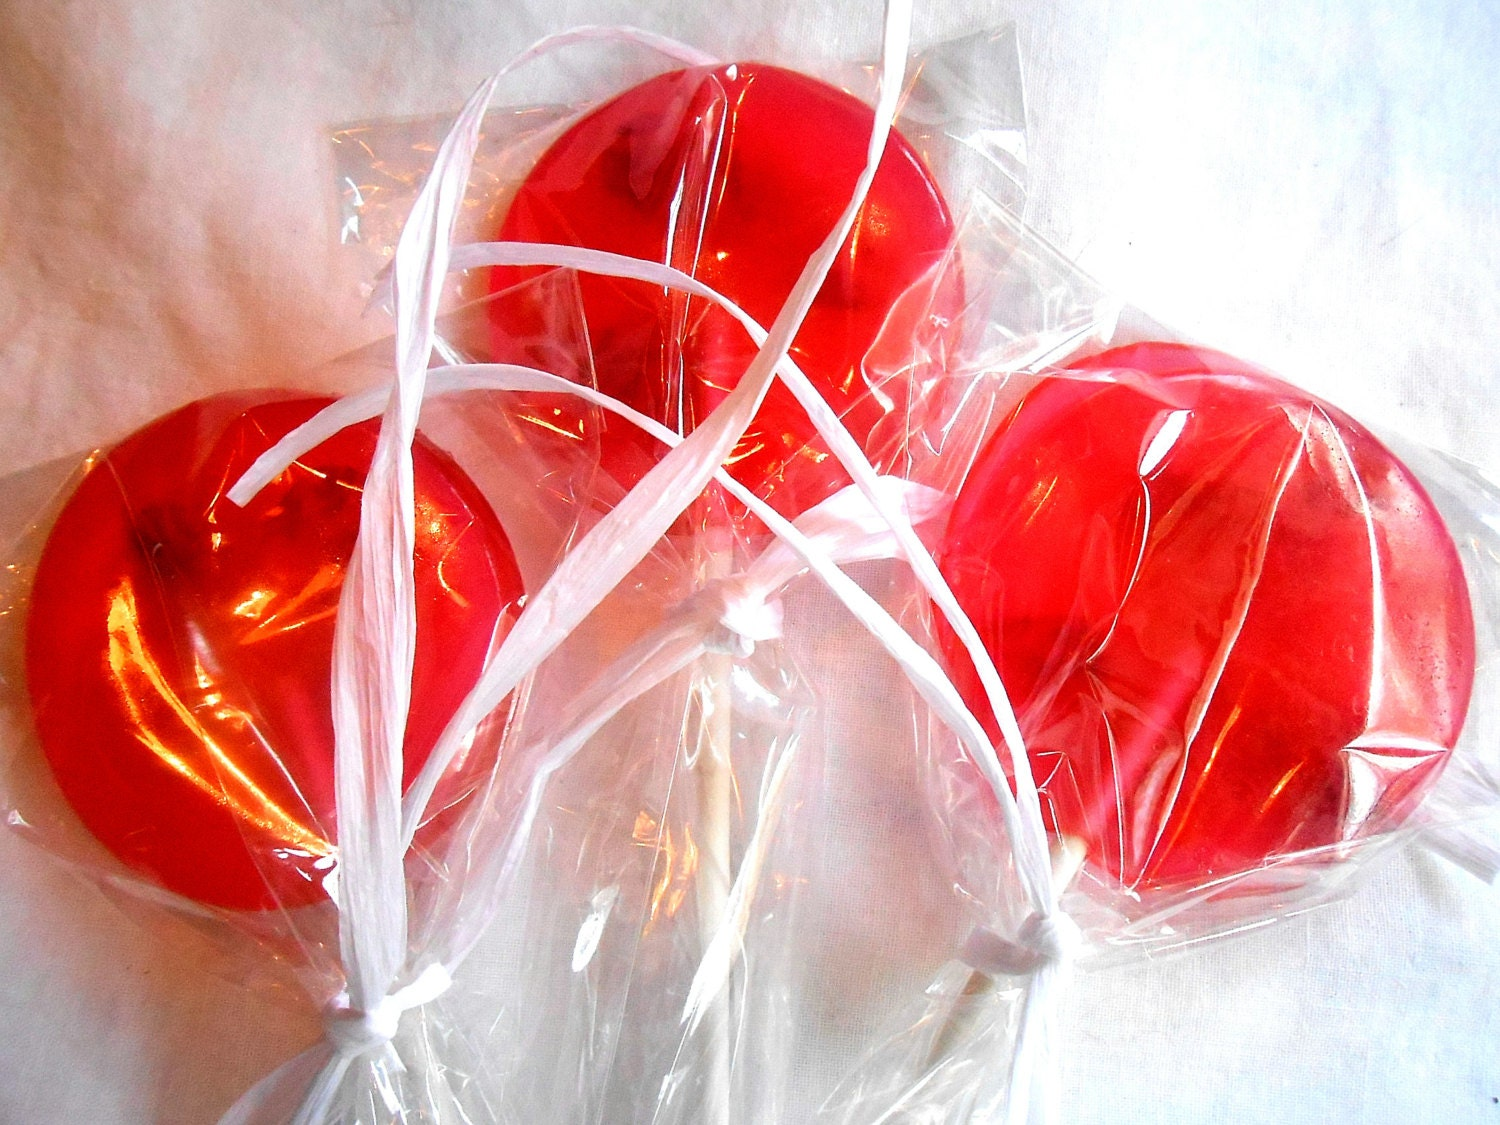 Gourmet,Watermelon Red Rose Petal, Edible, Giant, Lollipops Candied ...